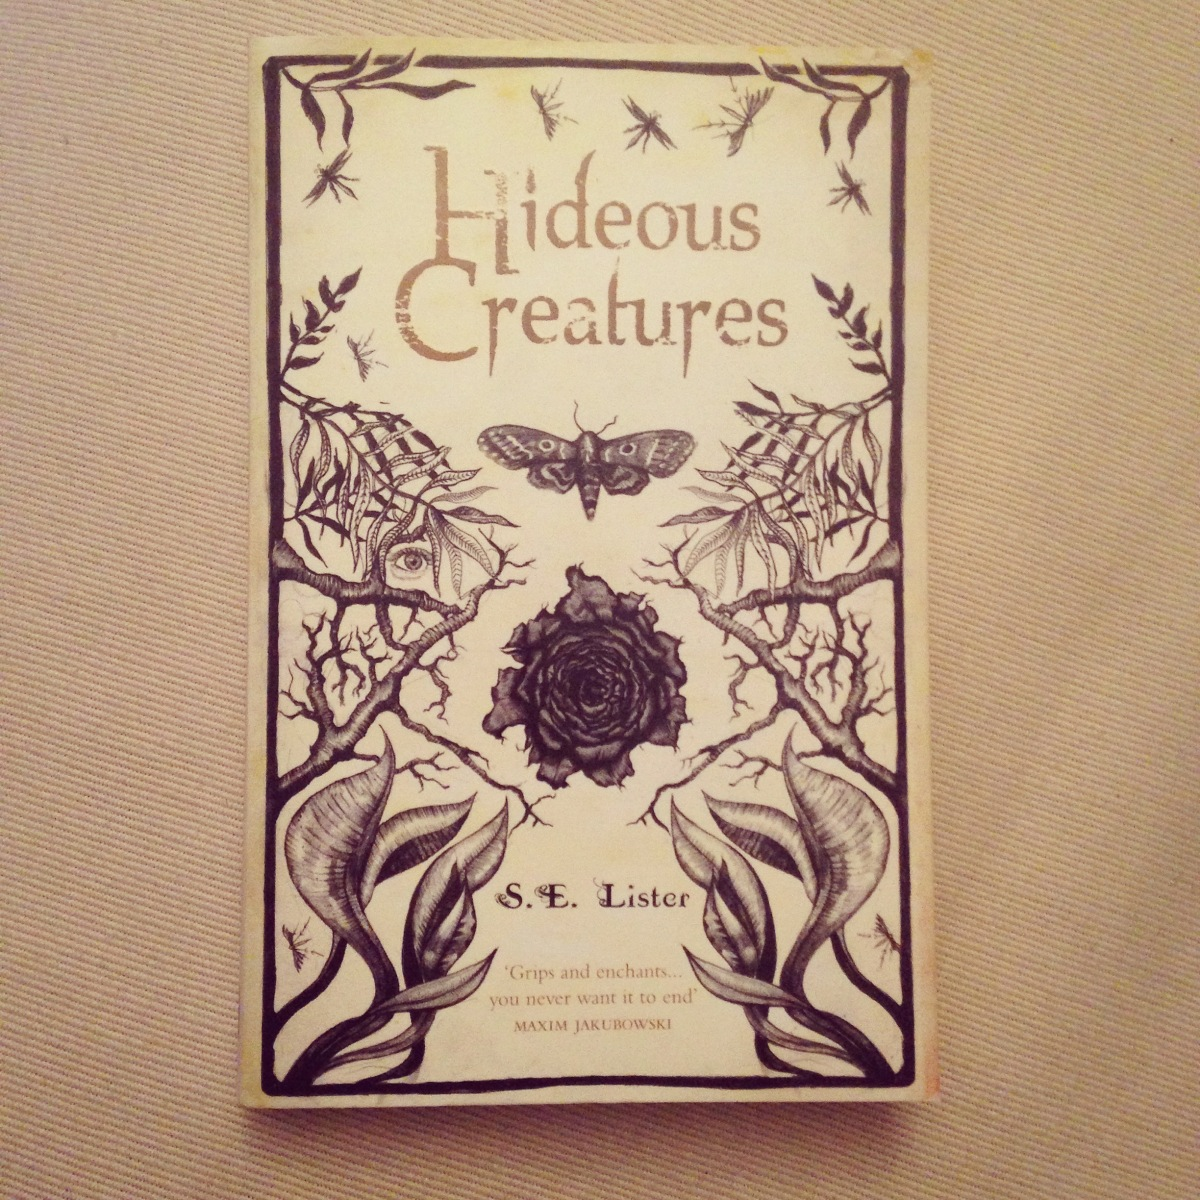 Hideous Creatures by S. E. Lister